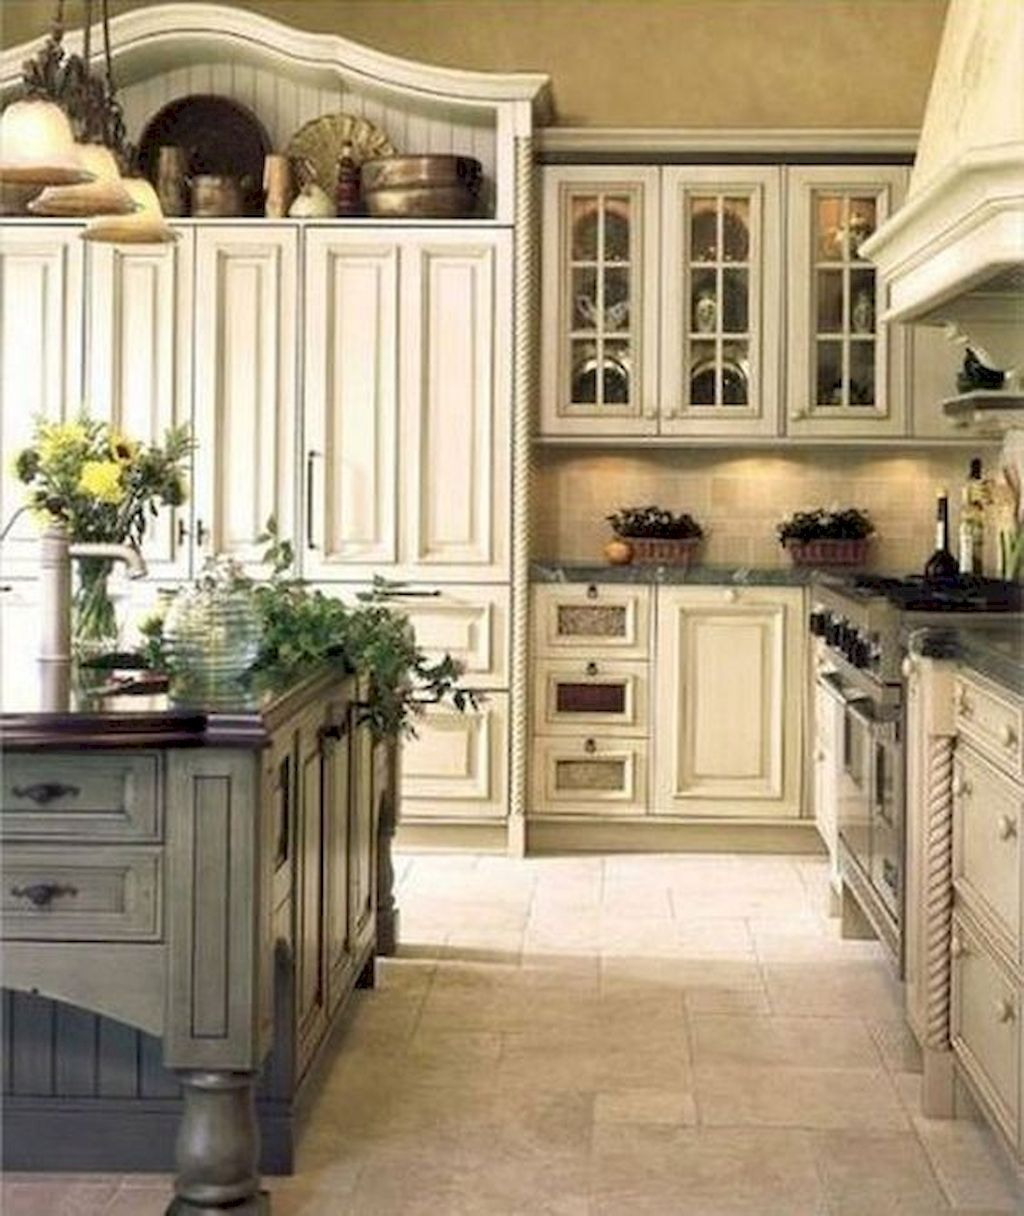 75 Incredible French Country Kitchen Design Ideas | Kitchen